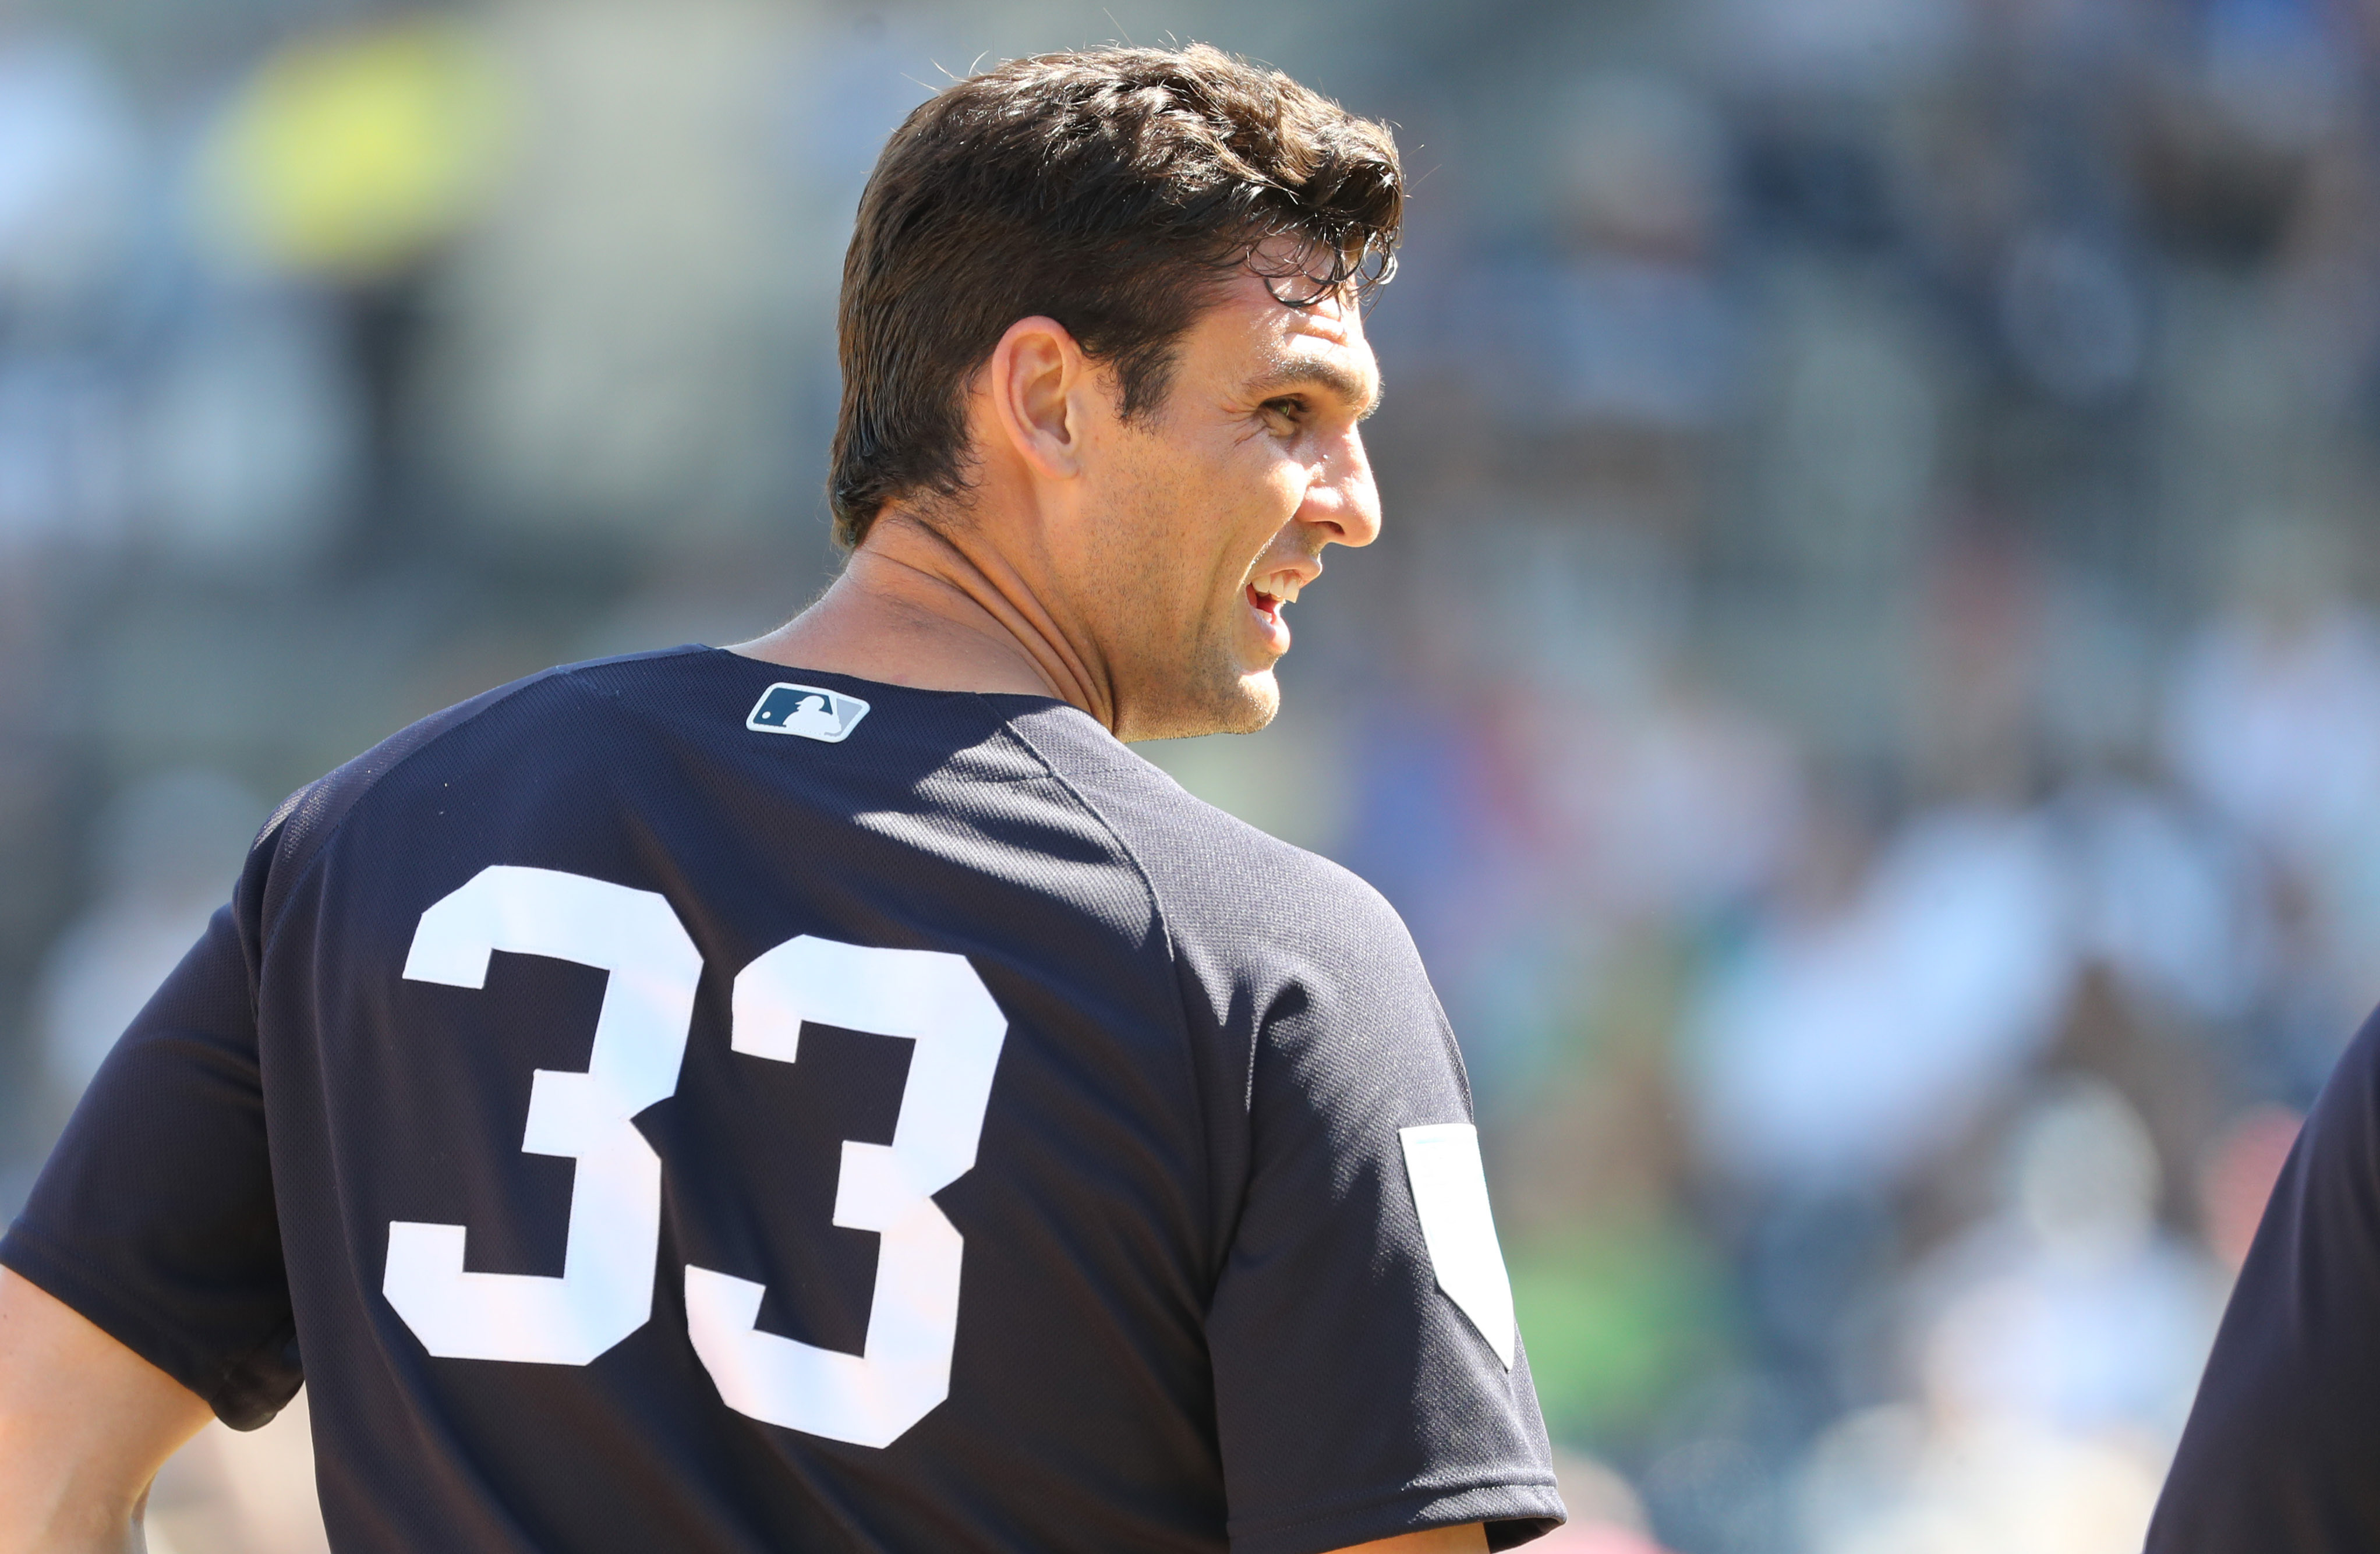 First baseman Greg Bird elects free agency in latest New York Yankees roster move